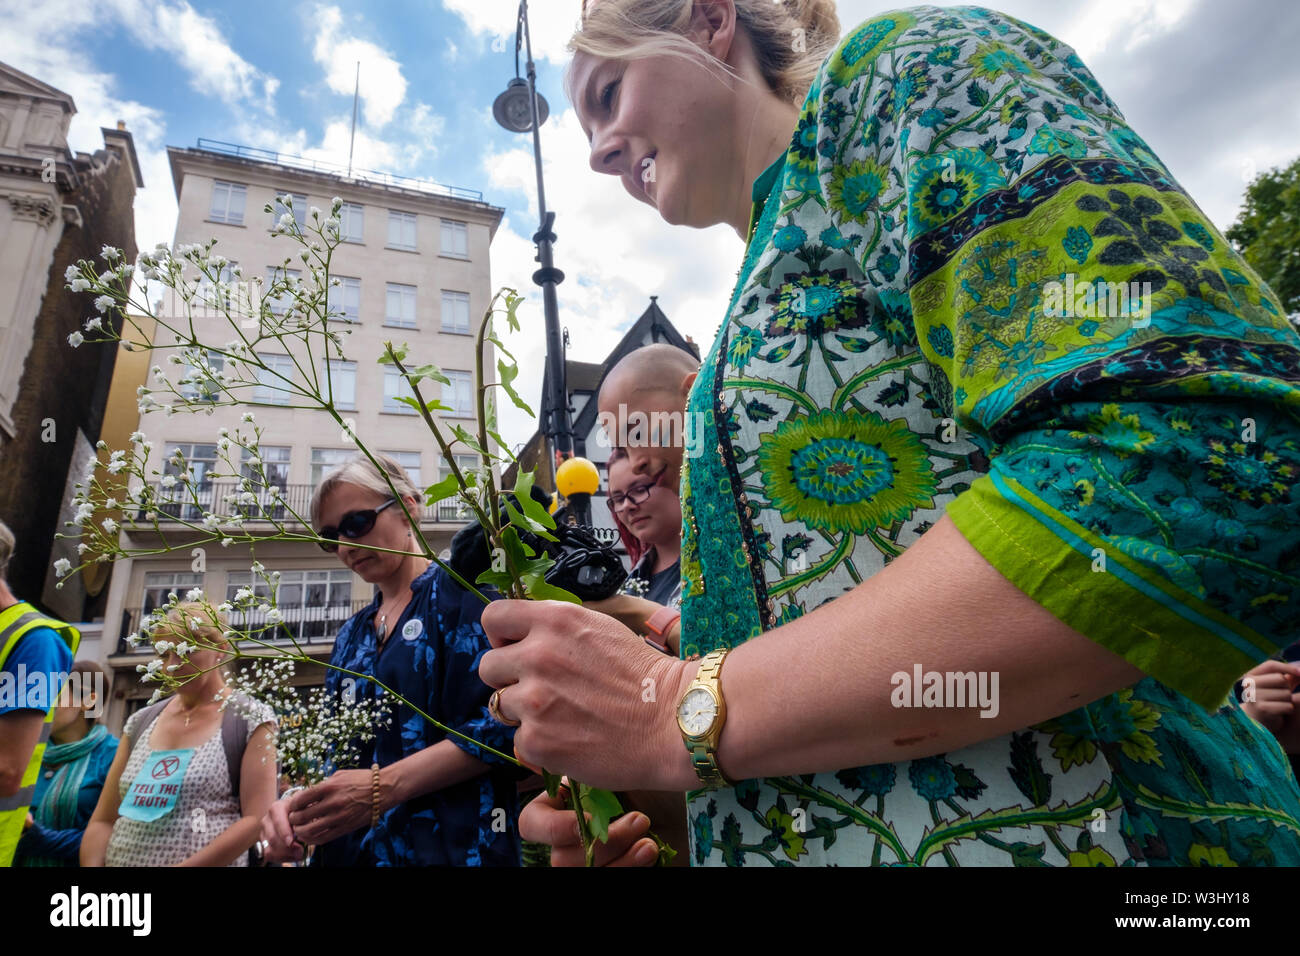 London, UK. 15th July 2019. People bring flowers to add to water from across the country in a ceremony against ecocide. Extinction Rebellion begins another series of protests in five major cities against the criminal inaction by the government on climate and ecological collapse. The protesters brought a yacht named after Polly Higgins who fought for years for an Ecocide Law to the Royal Courts of Justice and continued her fight blocking the Strand all day with performances, discussions, speeches, music and ceremonies in front of the yacht. Peter Marshall/Alamy Live News - Stock Image